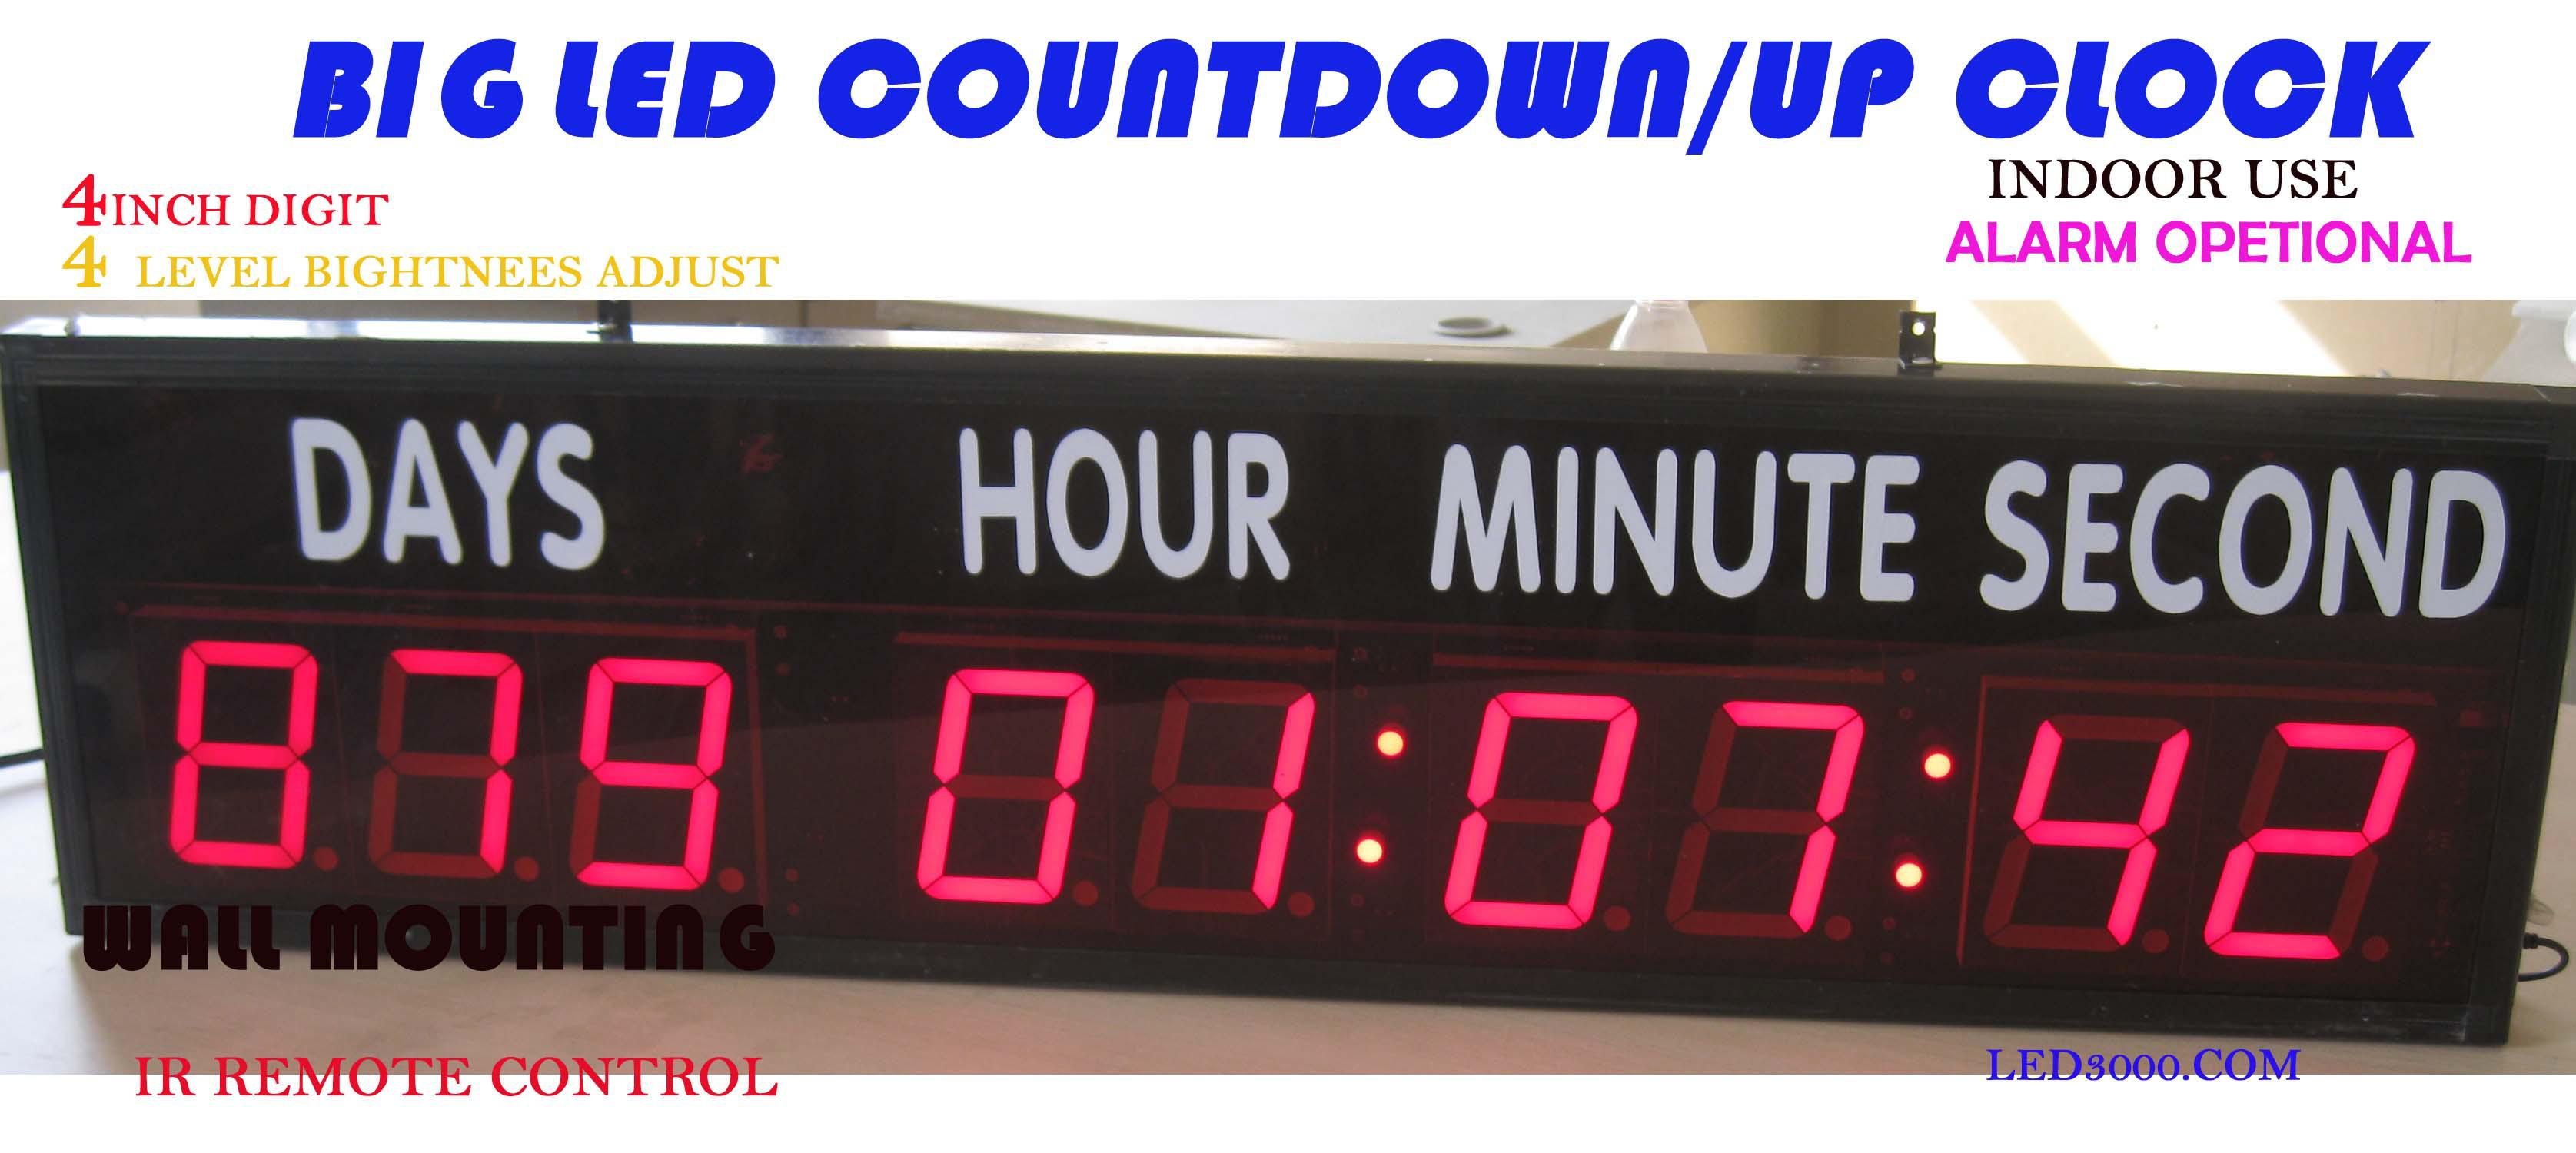 Big size dayshoursminutes and seconds countdownup clock led big size dayshoursminutes and seconds countdownup clock led timer activities research and development production target c led clock wall clock digit amipublicfo Gallery